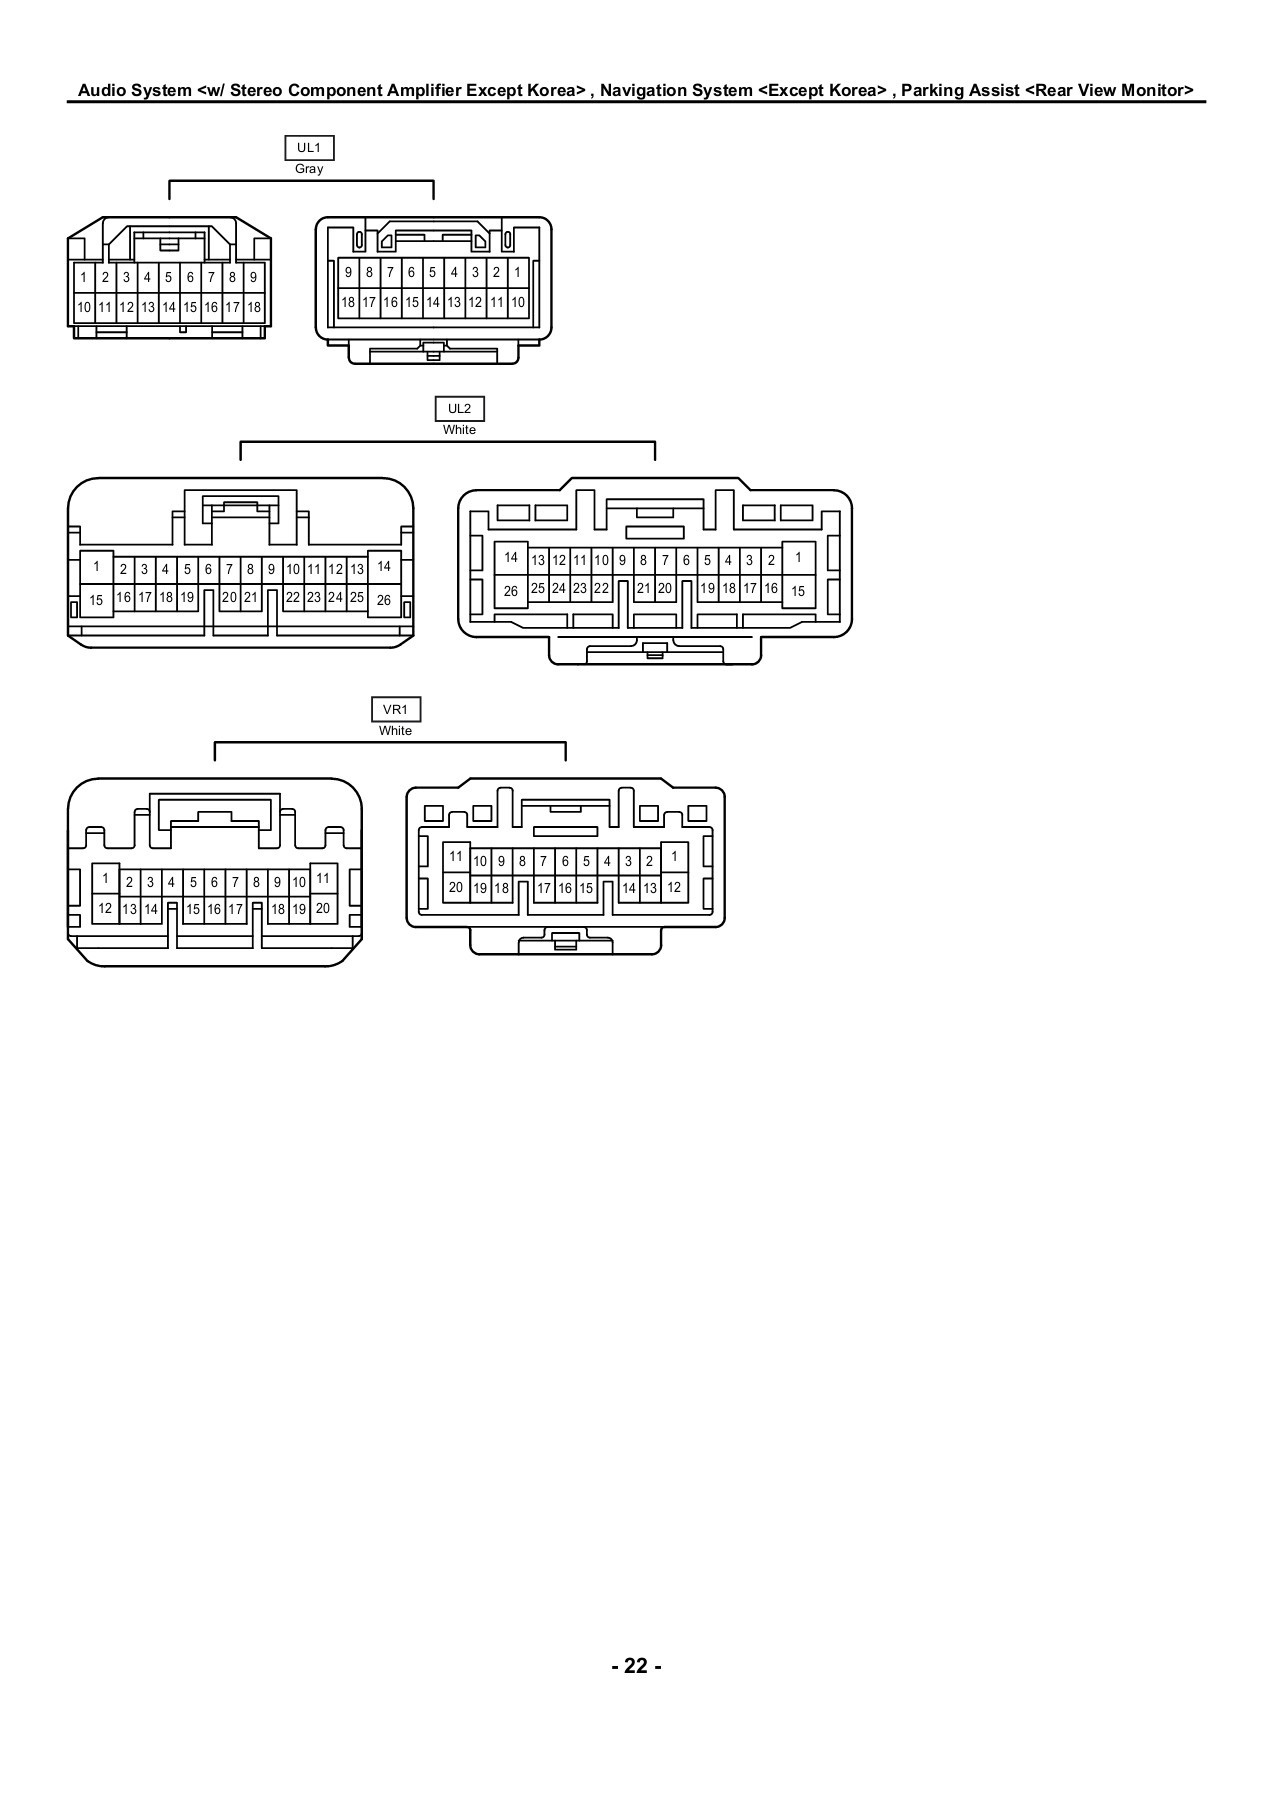 toyota prius 2010 electrical wiring diagrams pages 51 100 text version fliphtml5 [ 1273 x 1800 Pixel ]